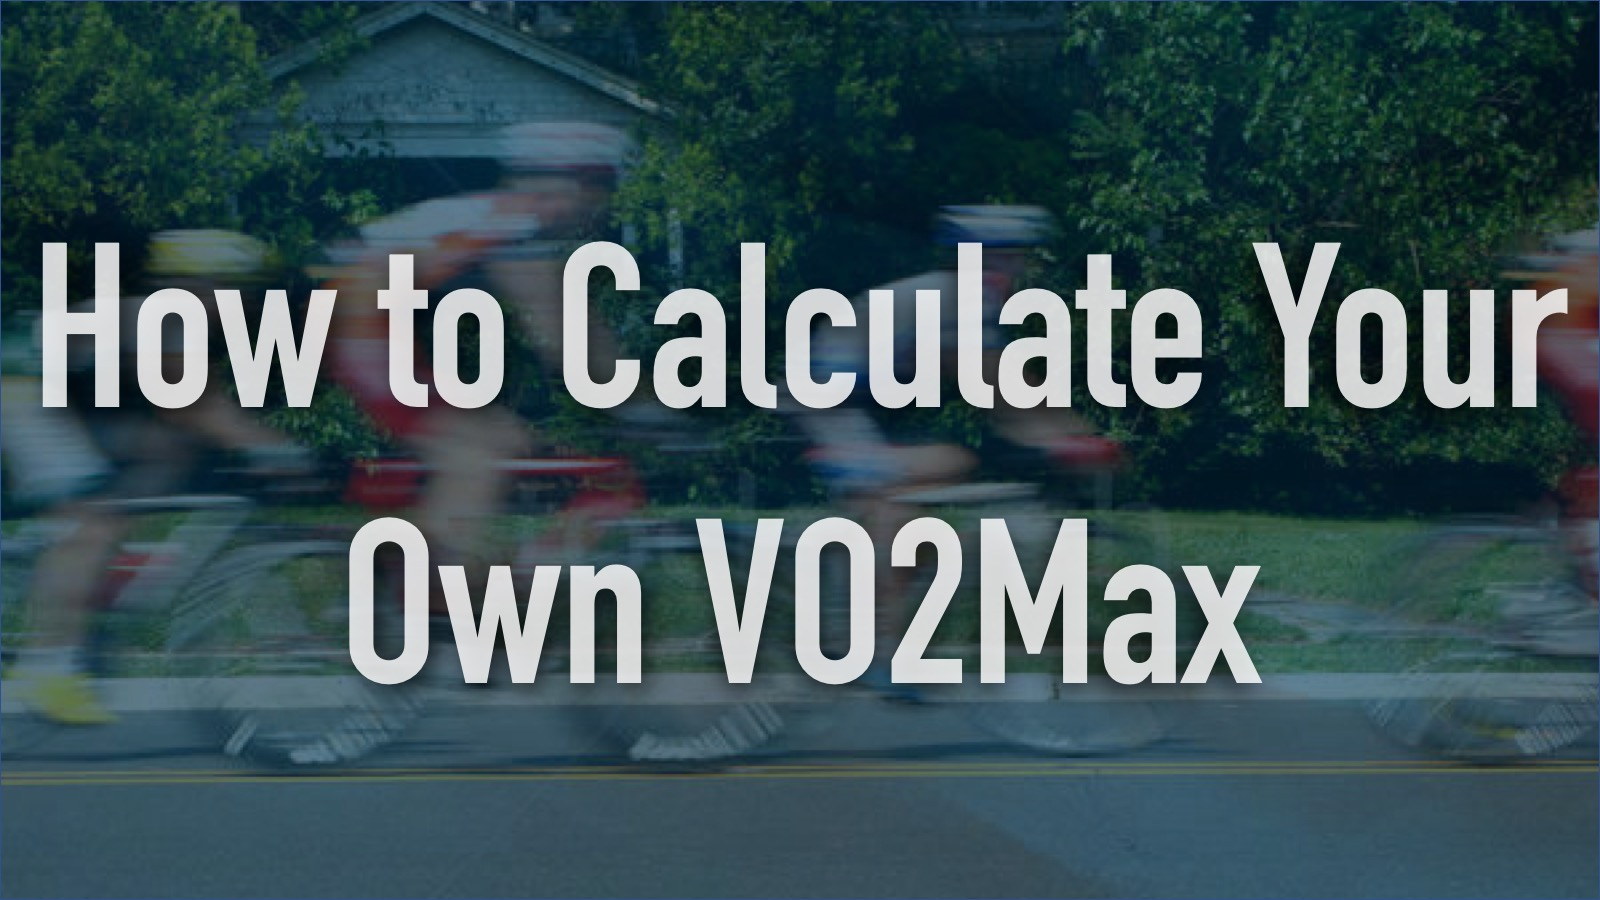 How to calculate your own VO2Max